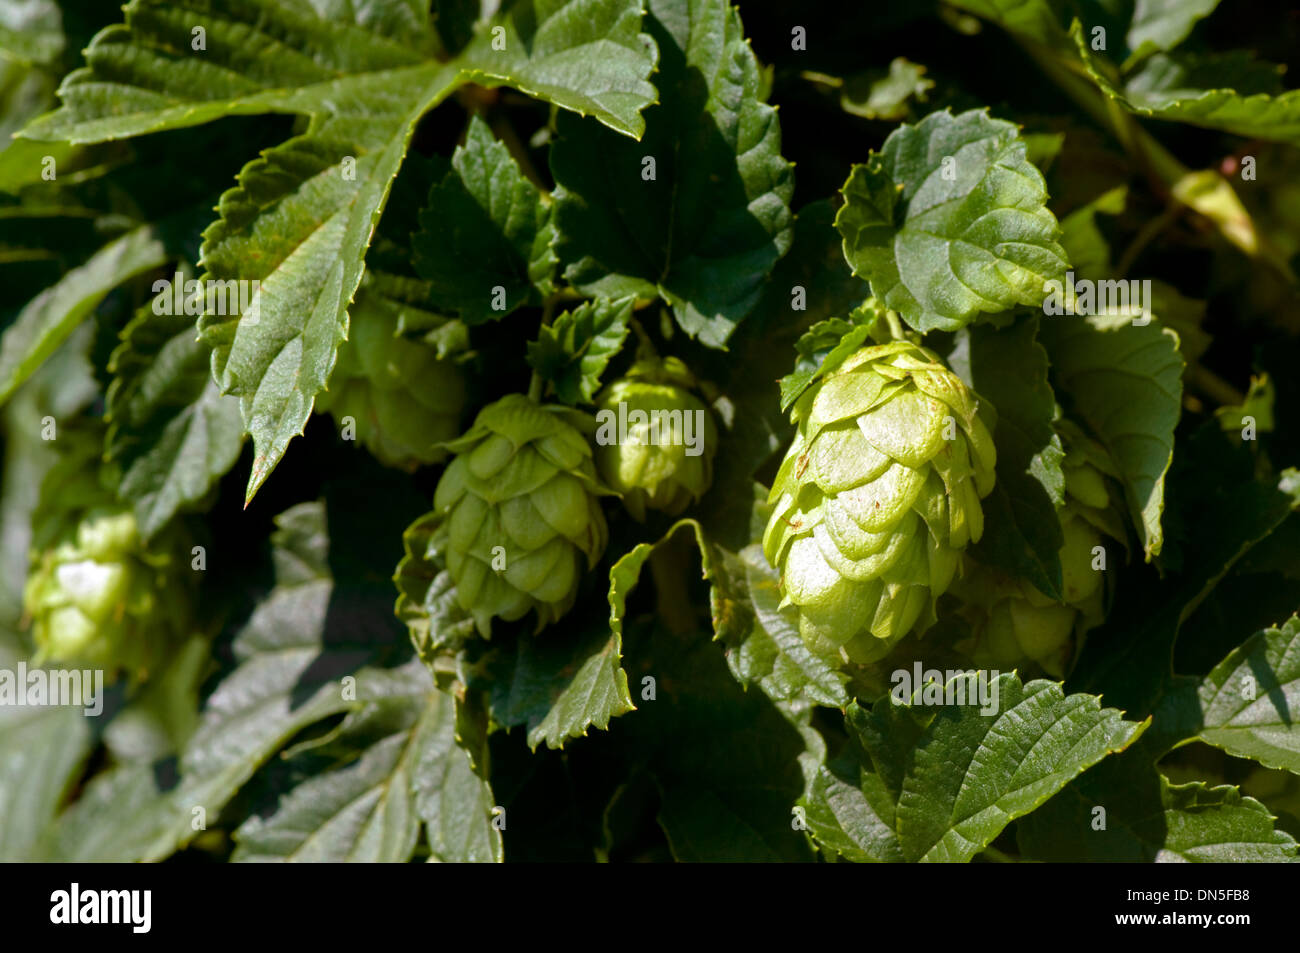 Closeup of hops growing on the vine. - Stock Image